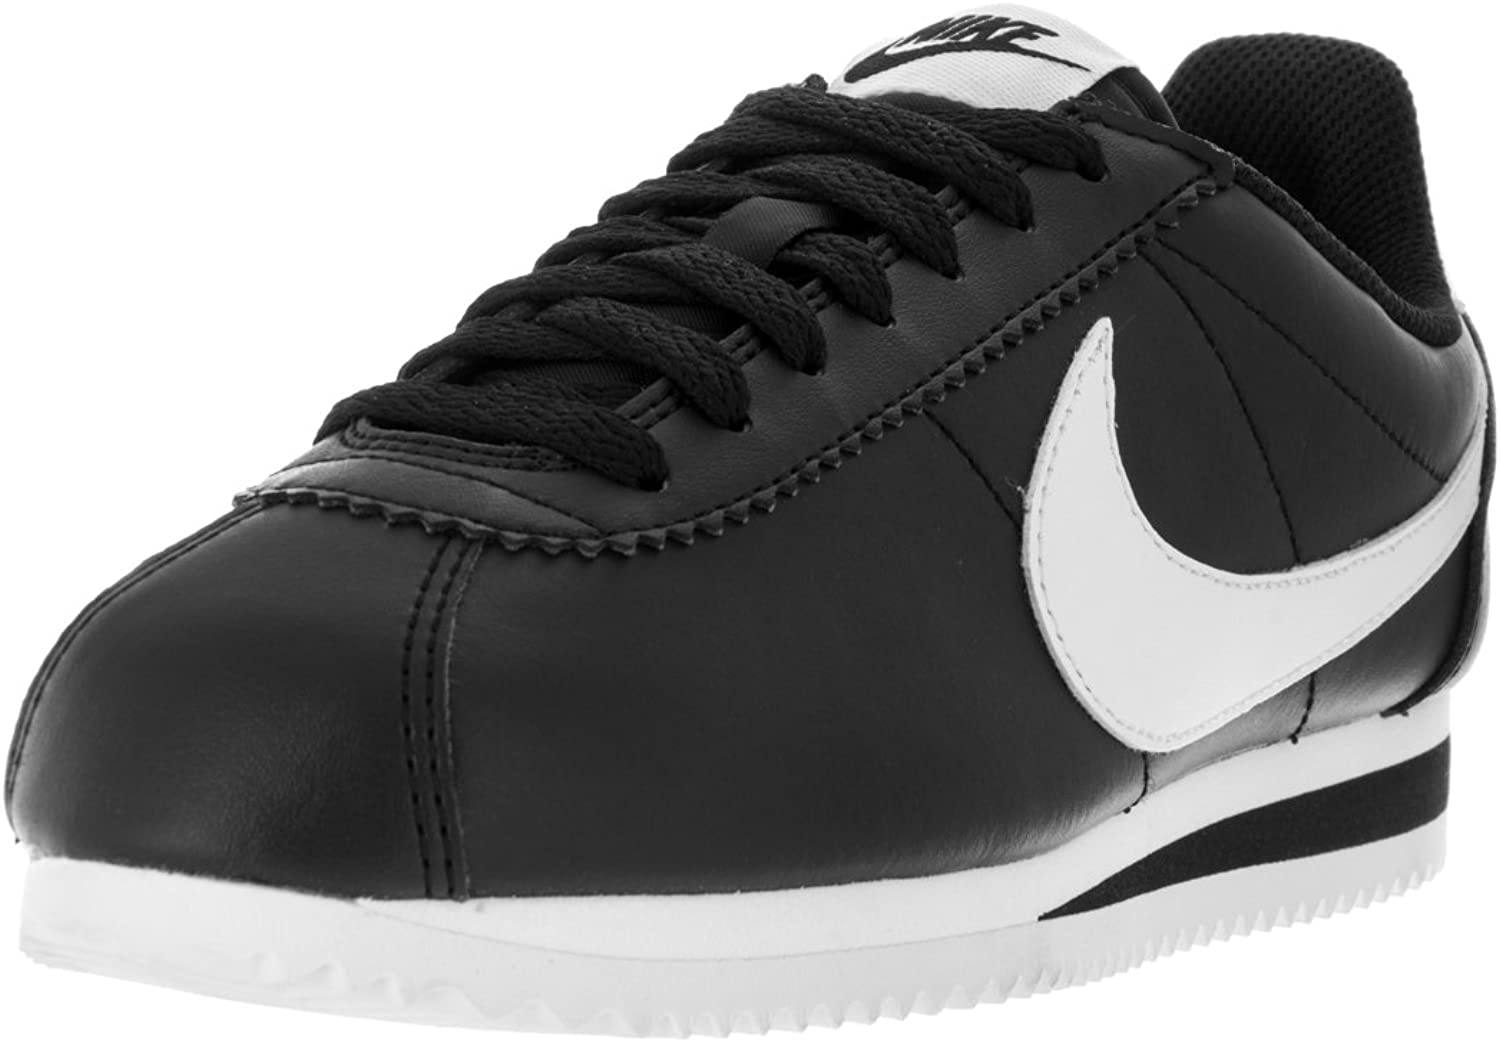 Nike Women's Classic Cortez Leather Gymnastics shoes